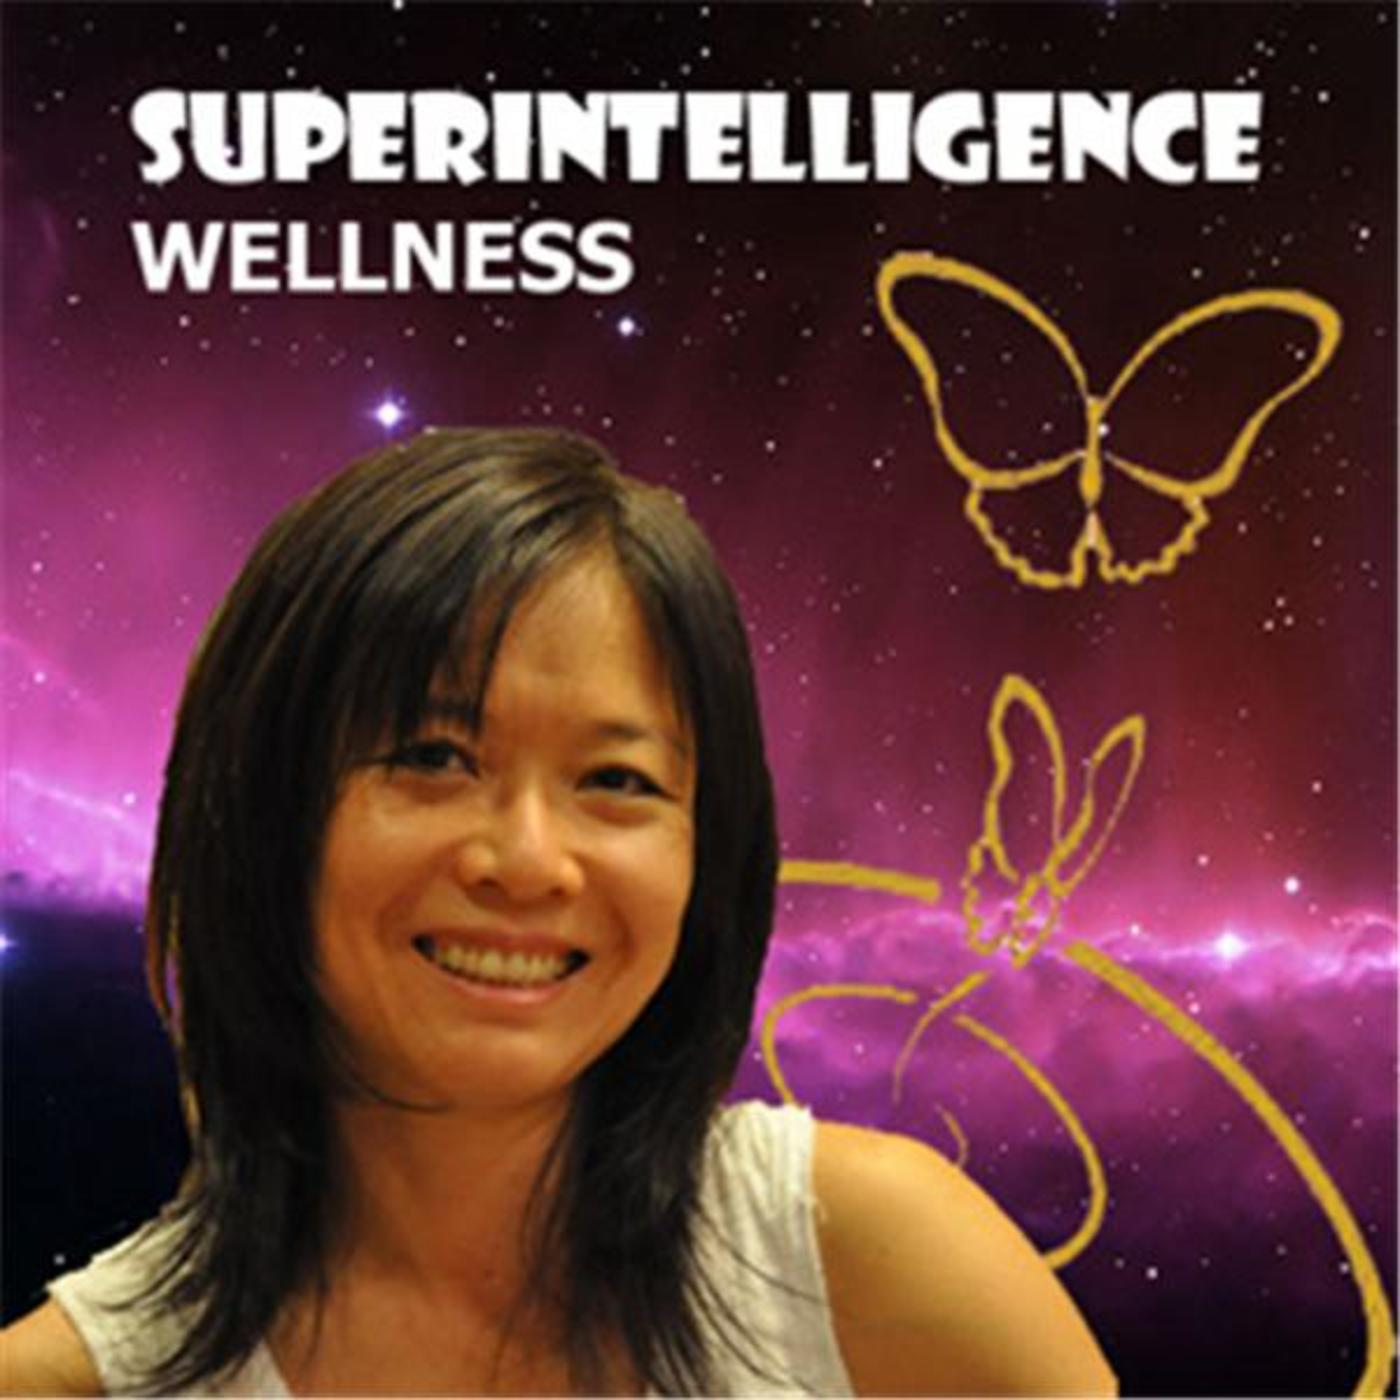 Superintelligence Wellness